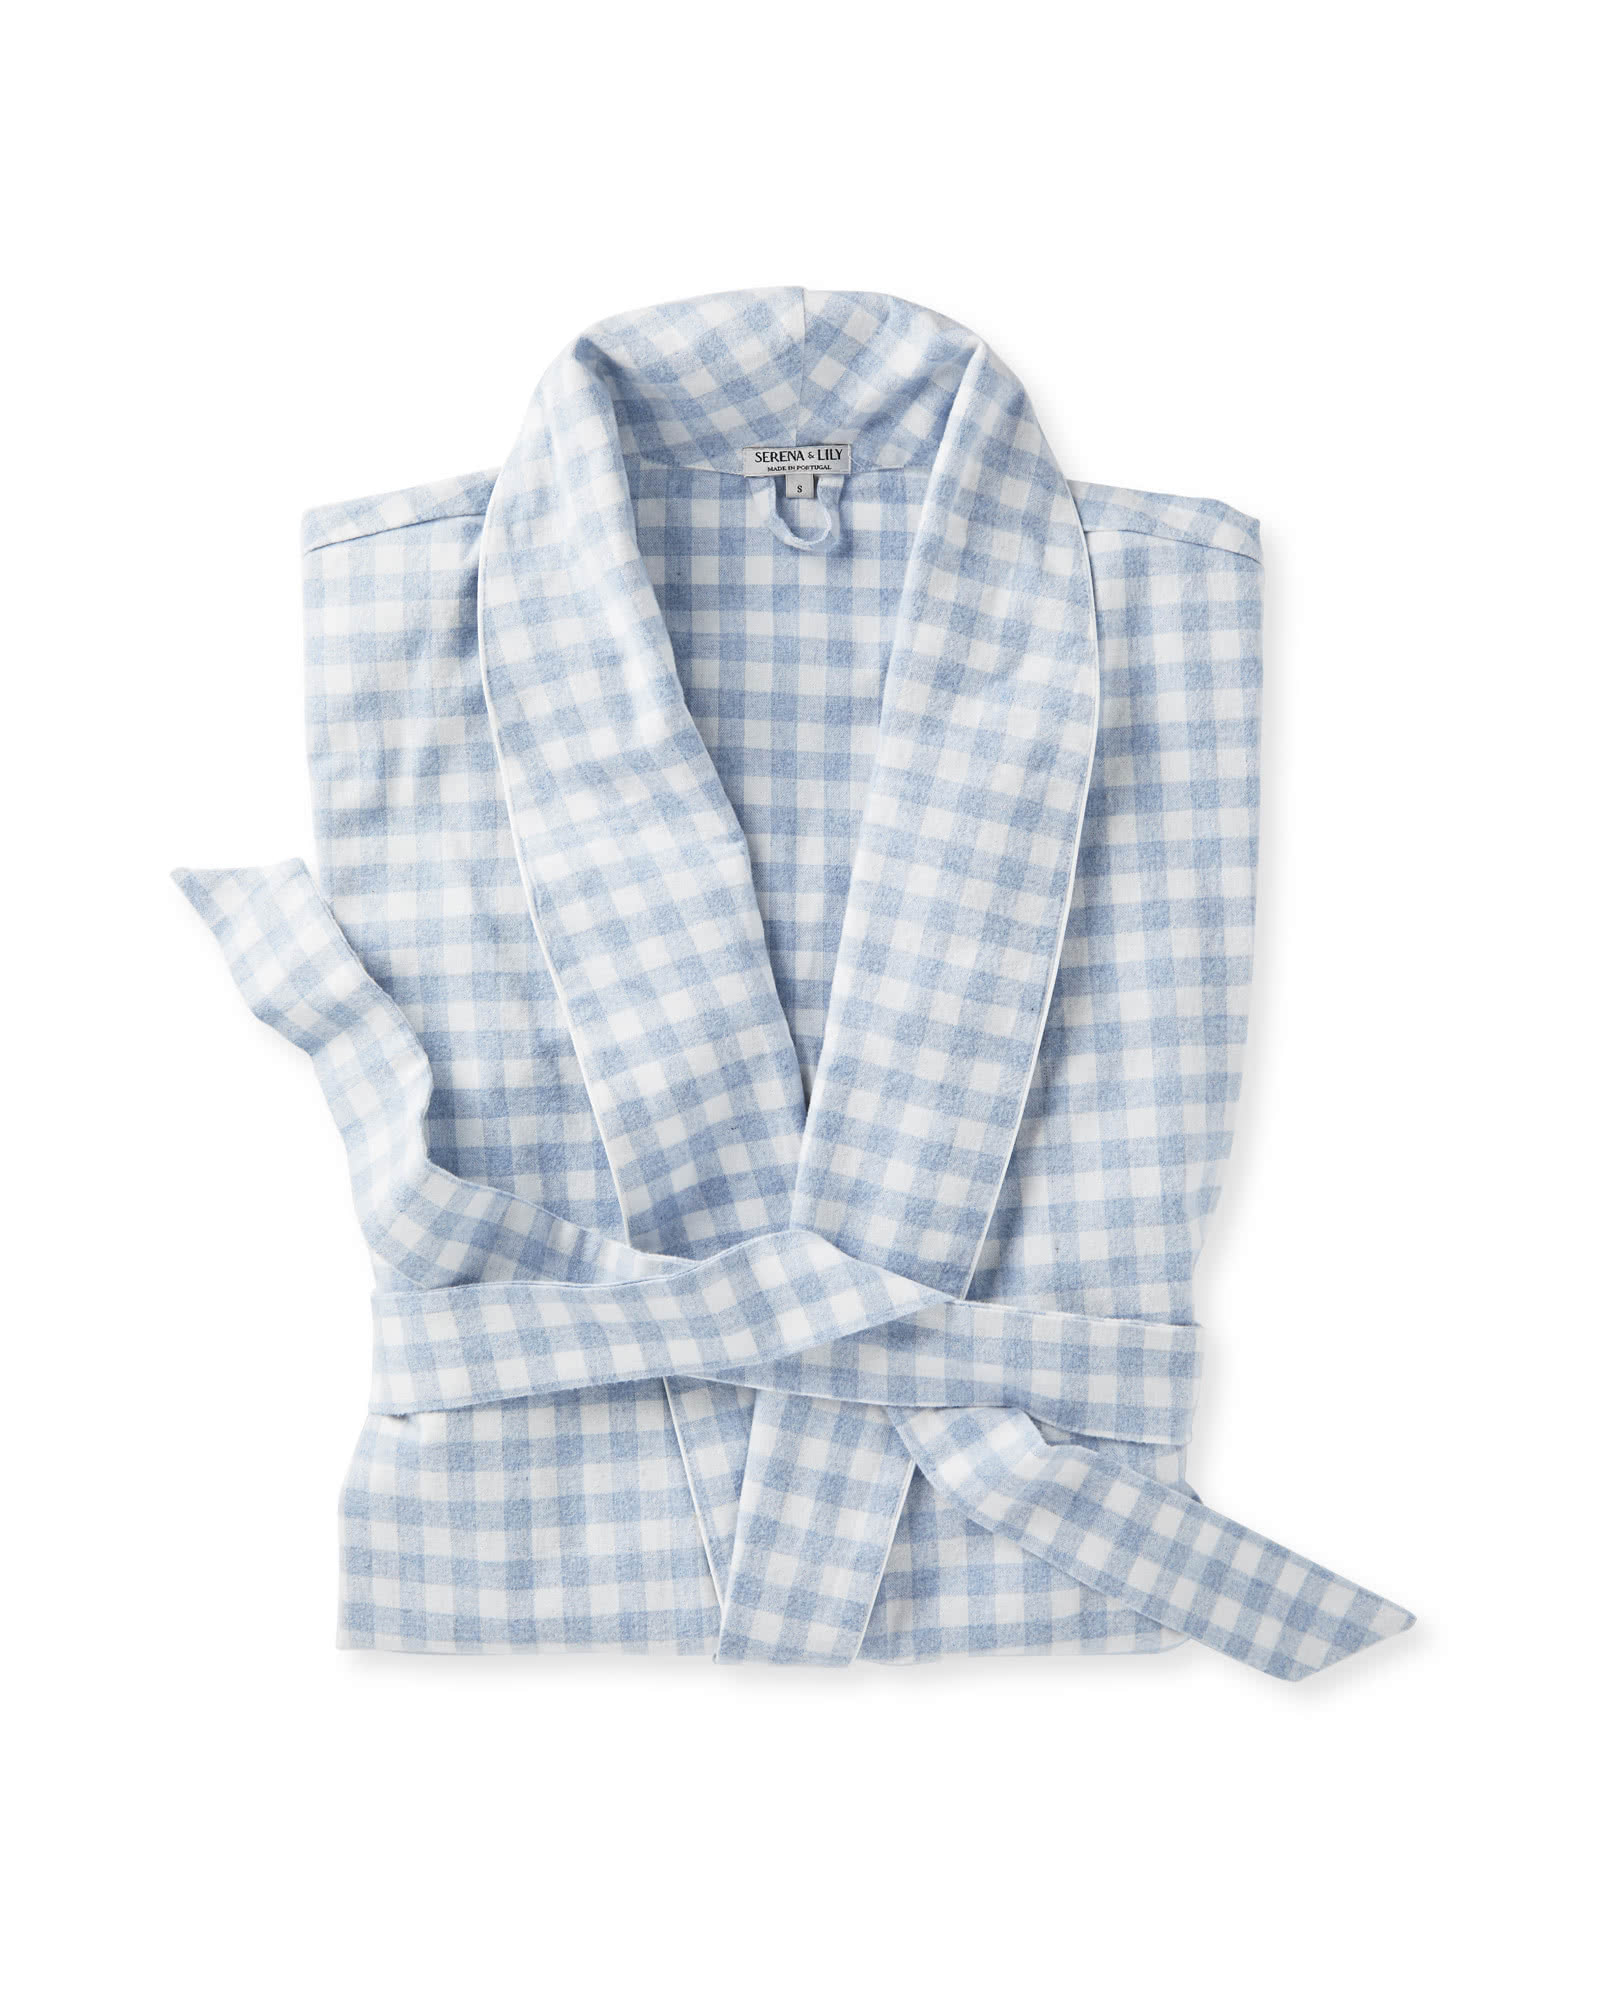 Dalton Flannel Robe, Chambray